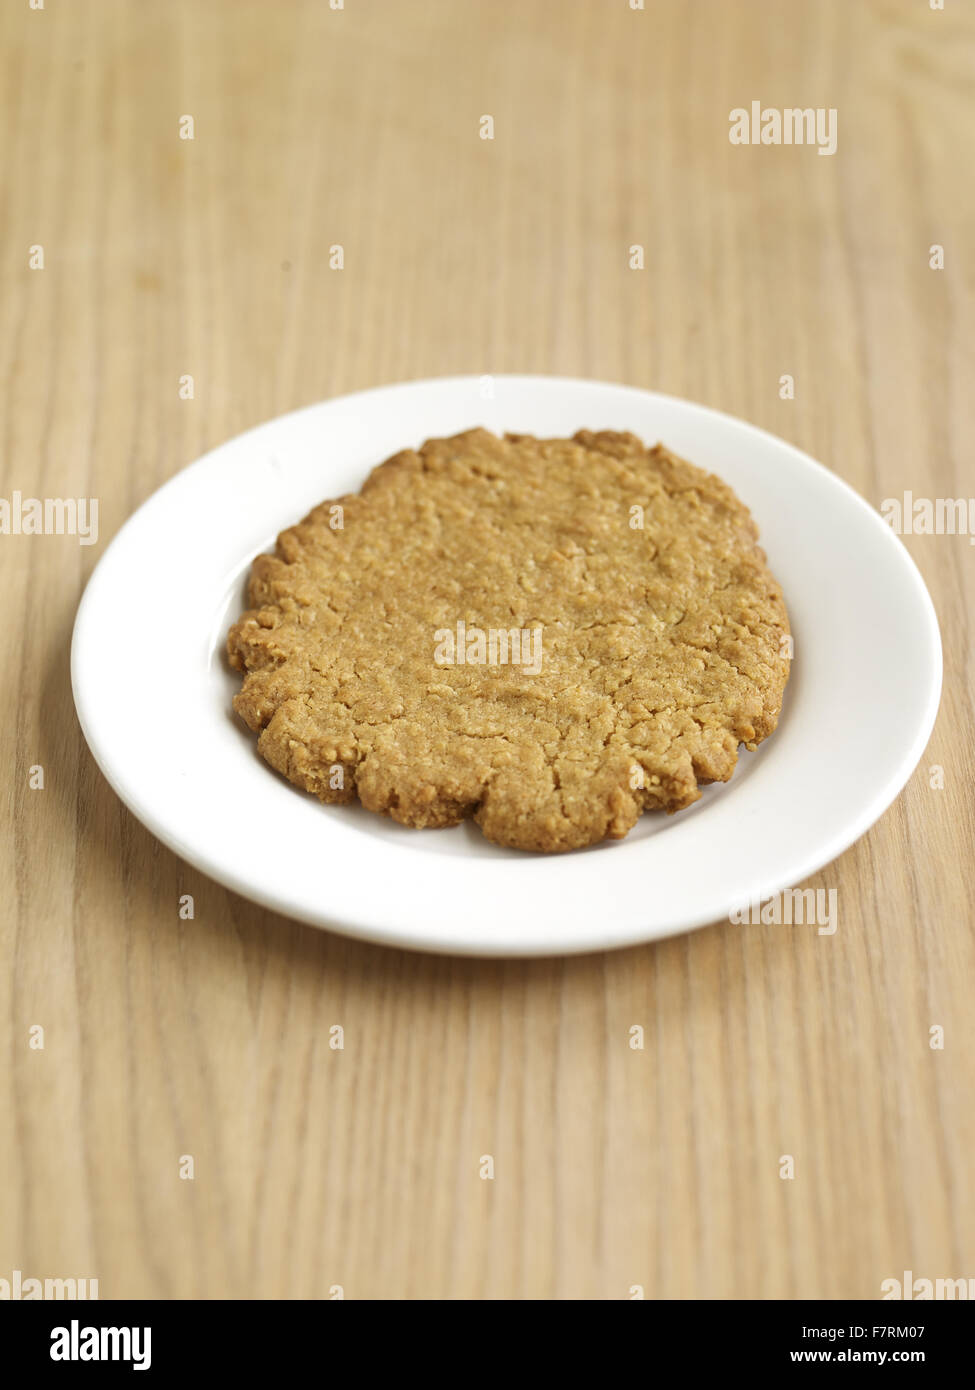 Oat and coconut cookie photographed for the 2015 National Trust Summer Cookbook. - Stock Image